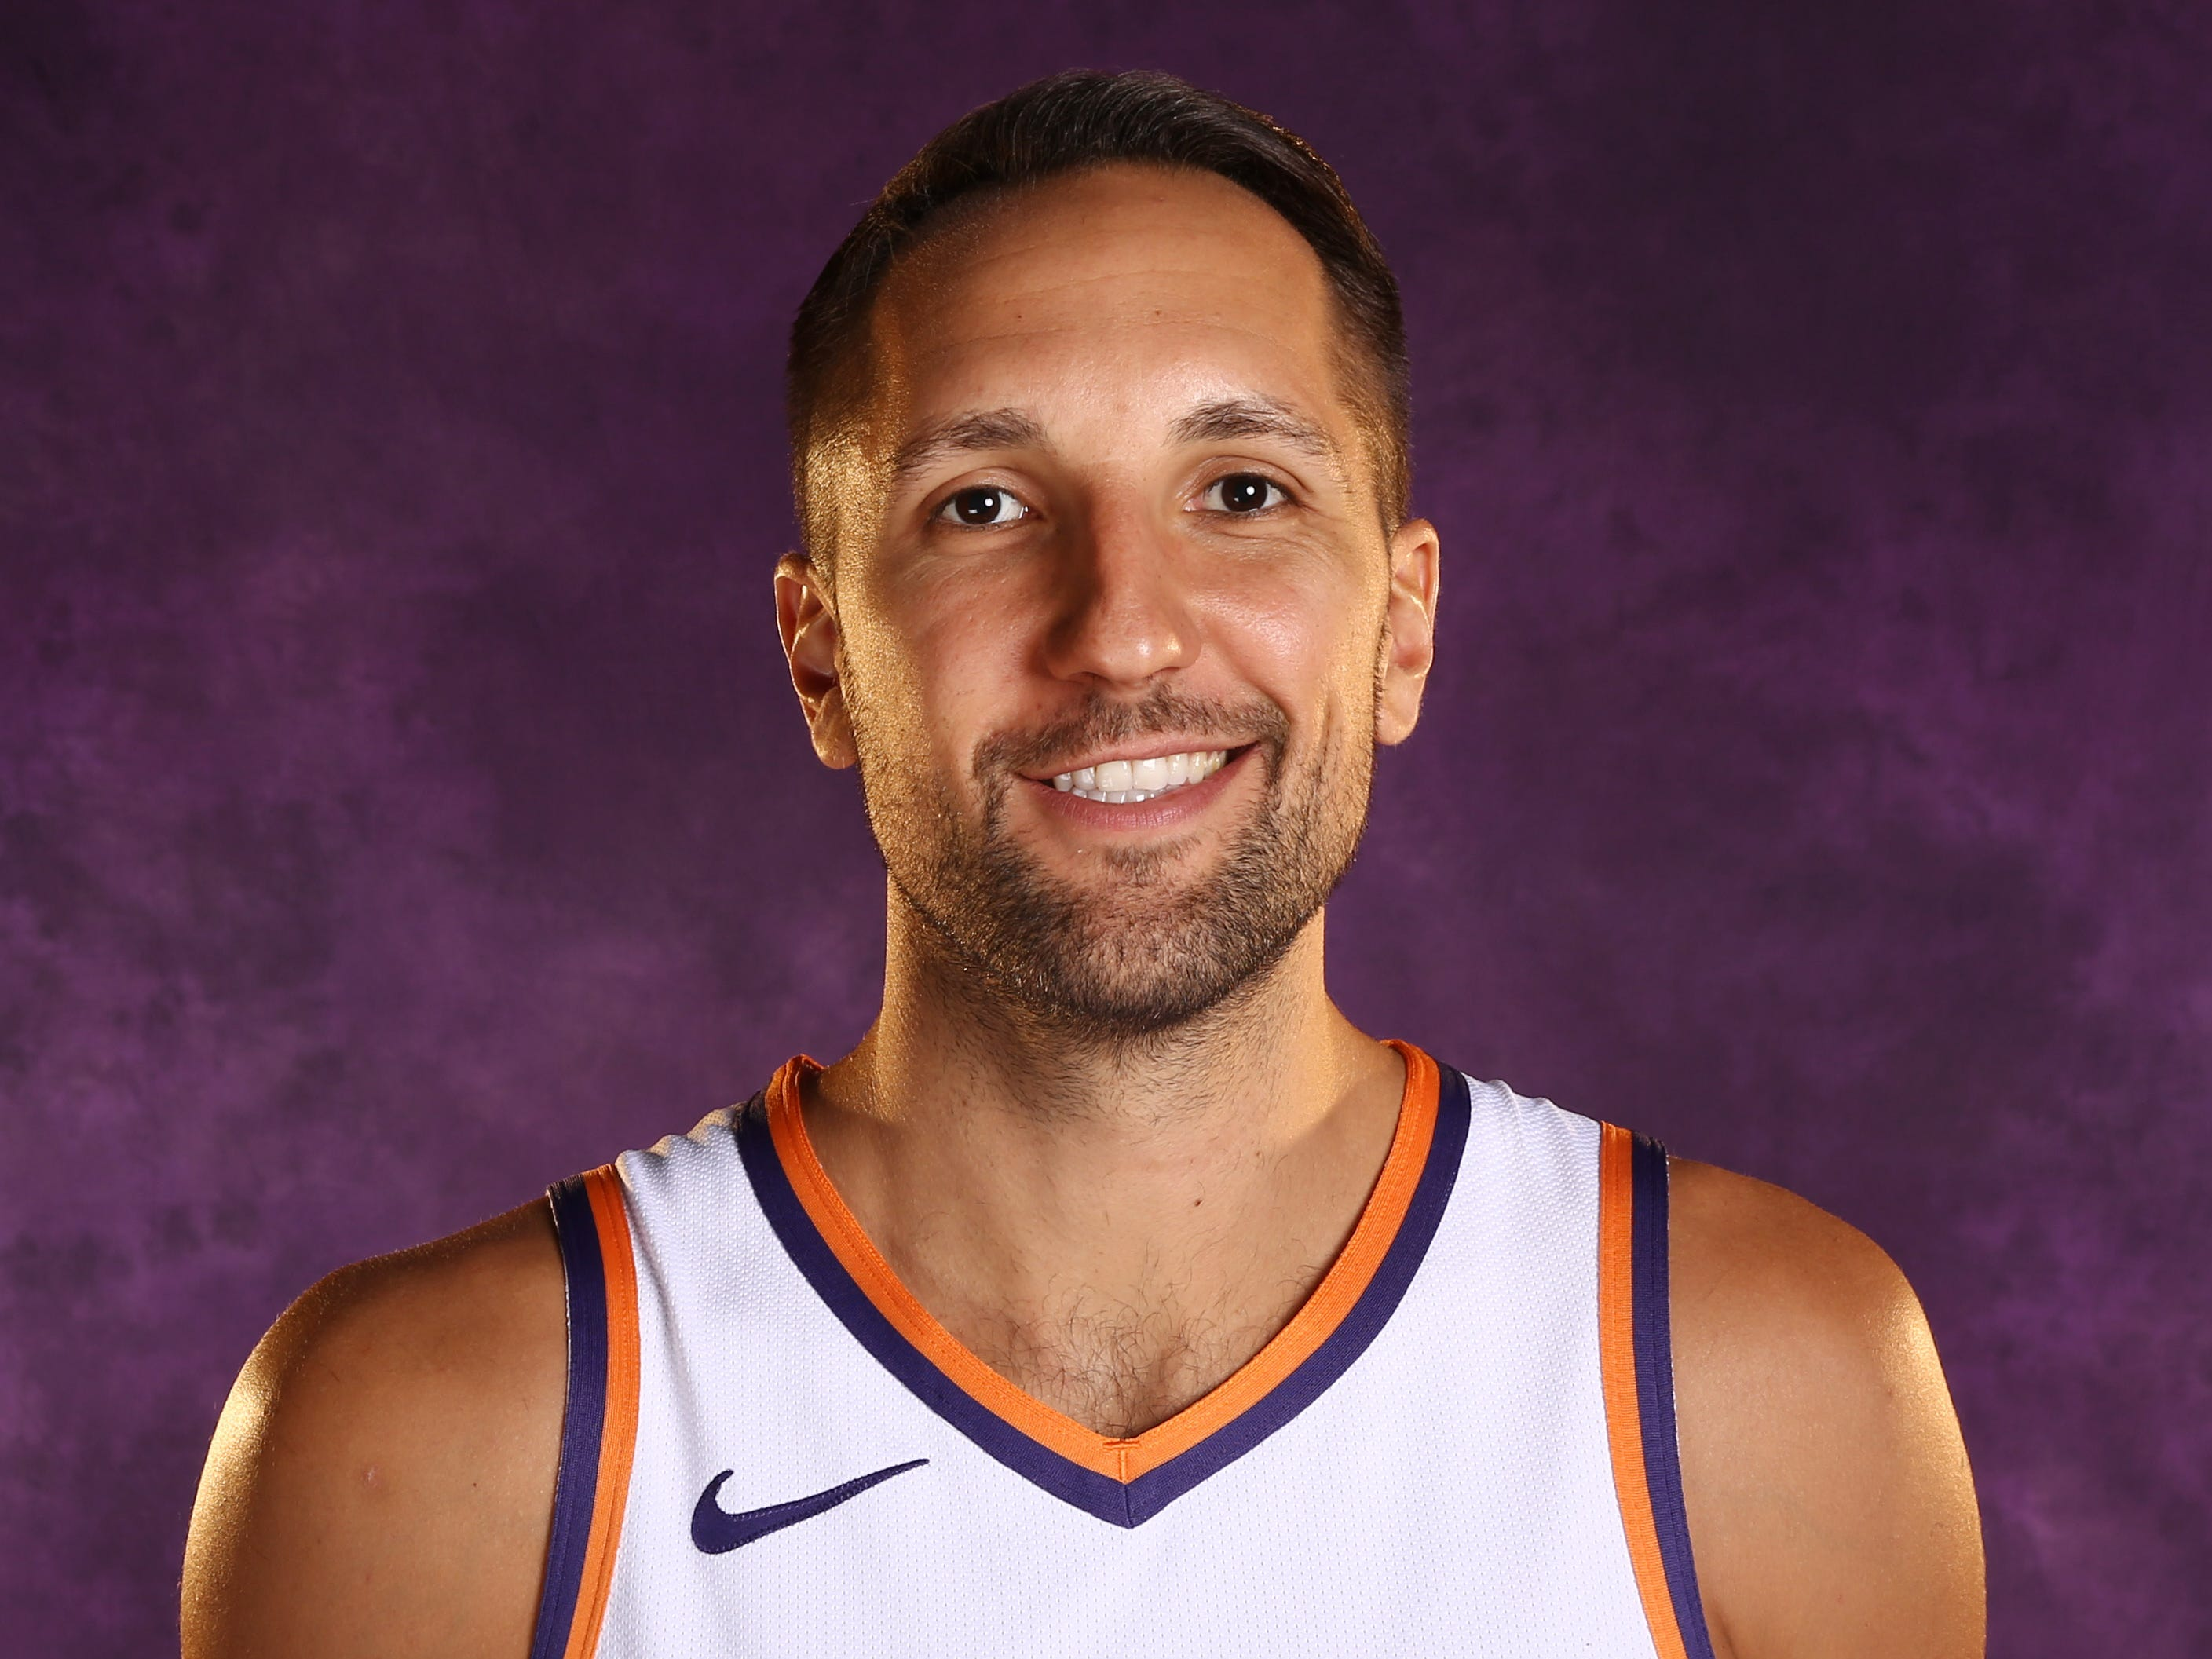 Phoenix Suns forward Ryan Anderson during media day at Talking Stick Resort Arena on Aug. 21, 2018, in Phoenix, Ariz.